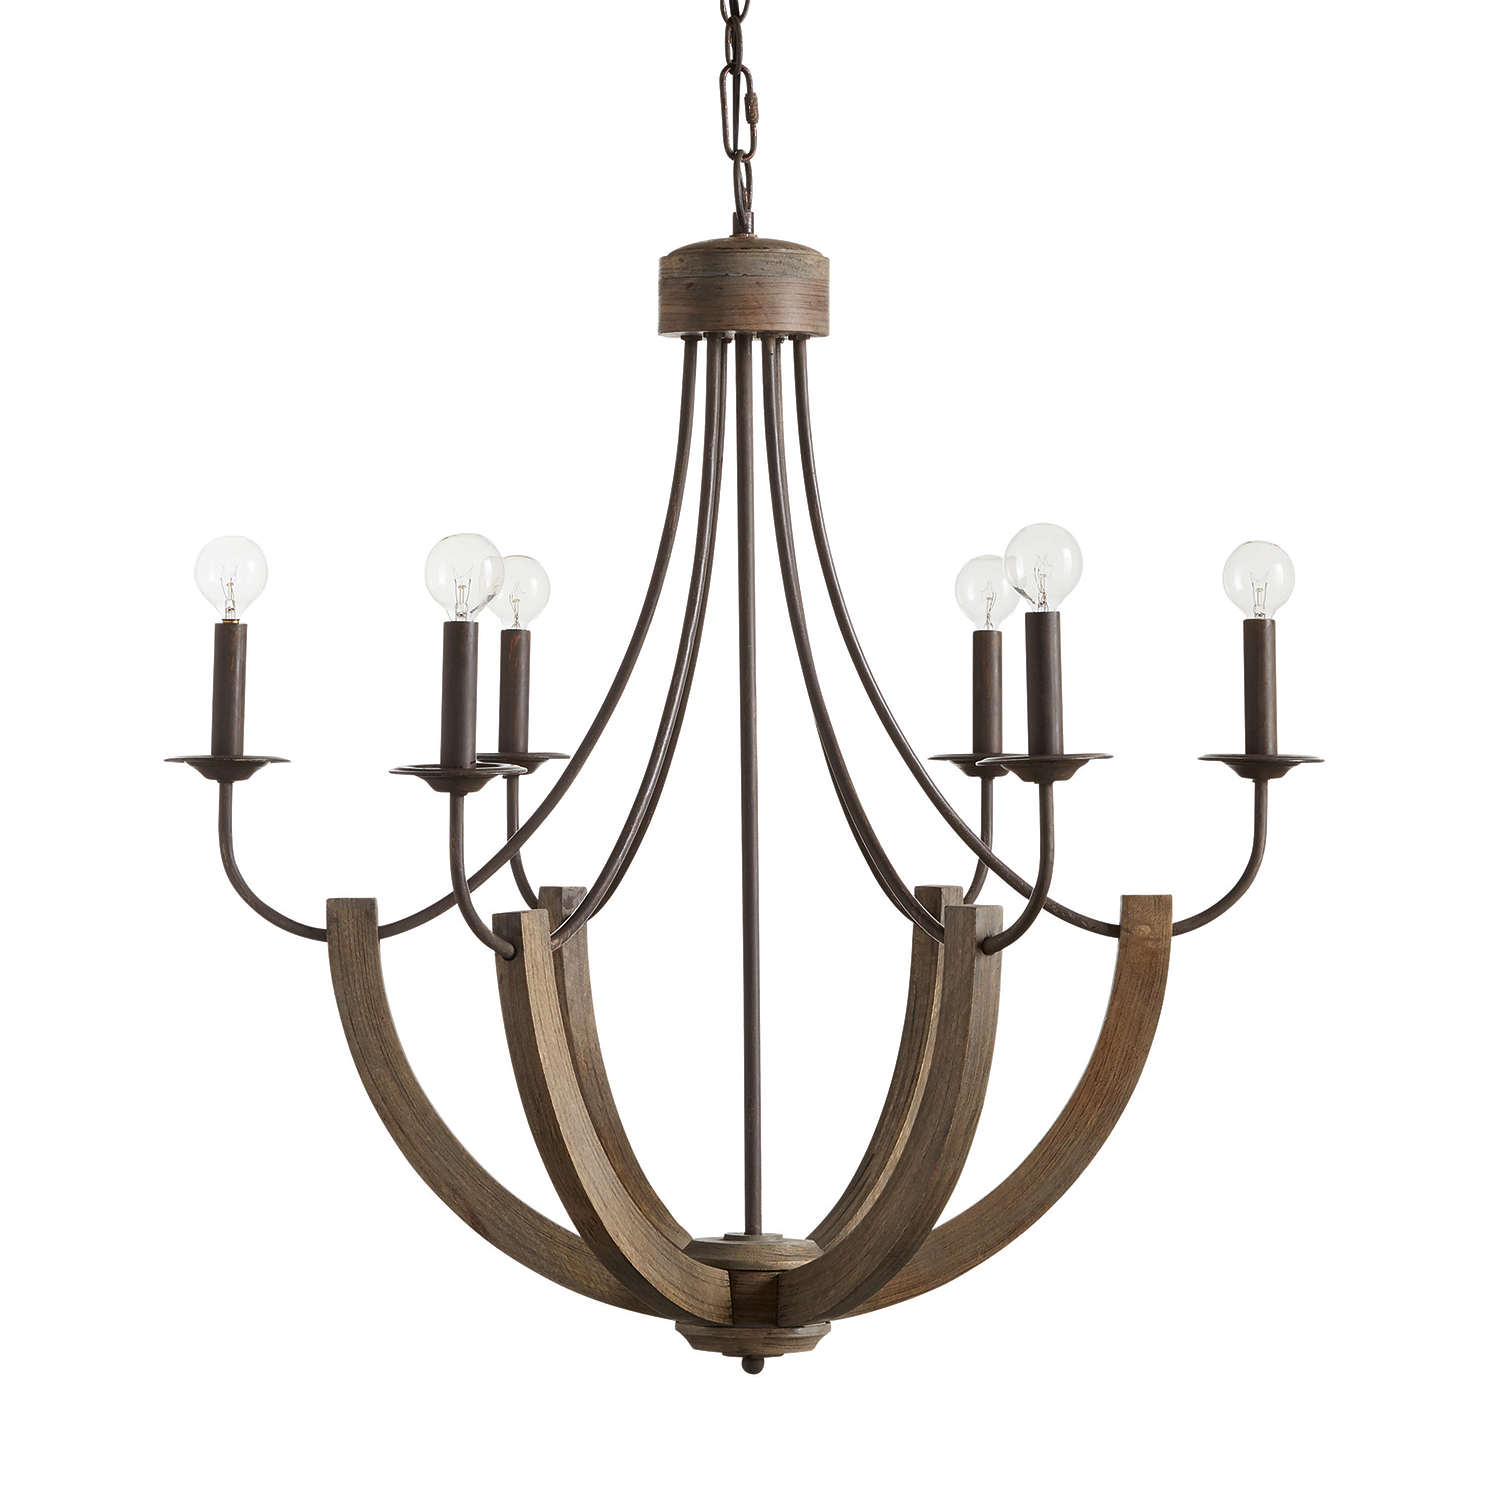 Tybee six light chandelier cottage style decorating renovating tybee six light chandelier arubaitofo Choice Image